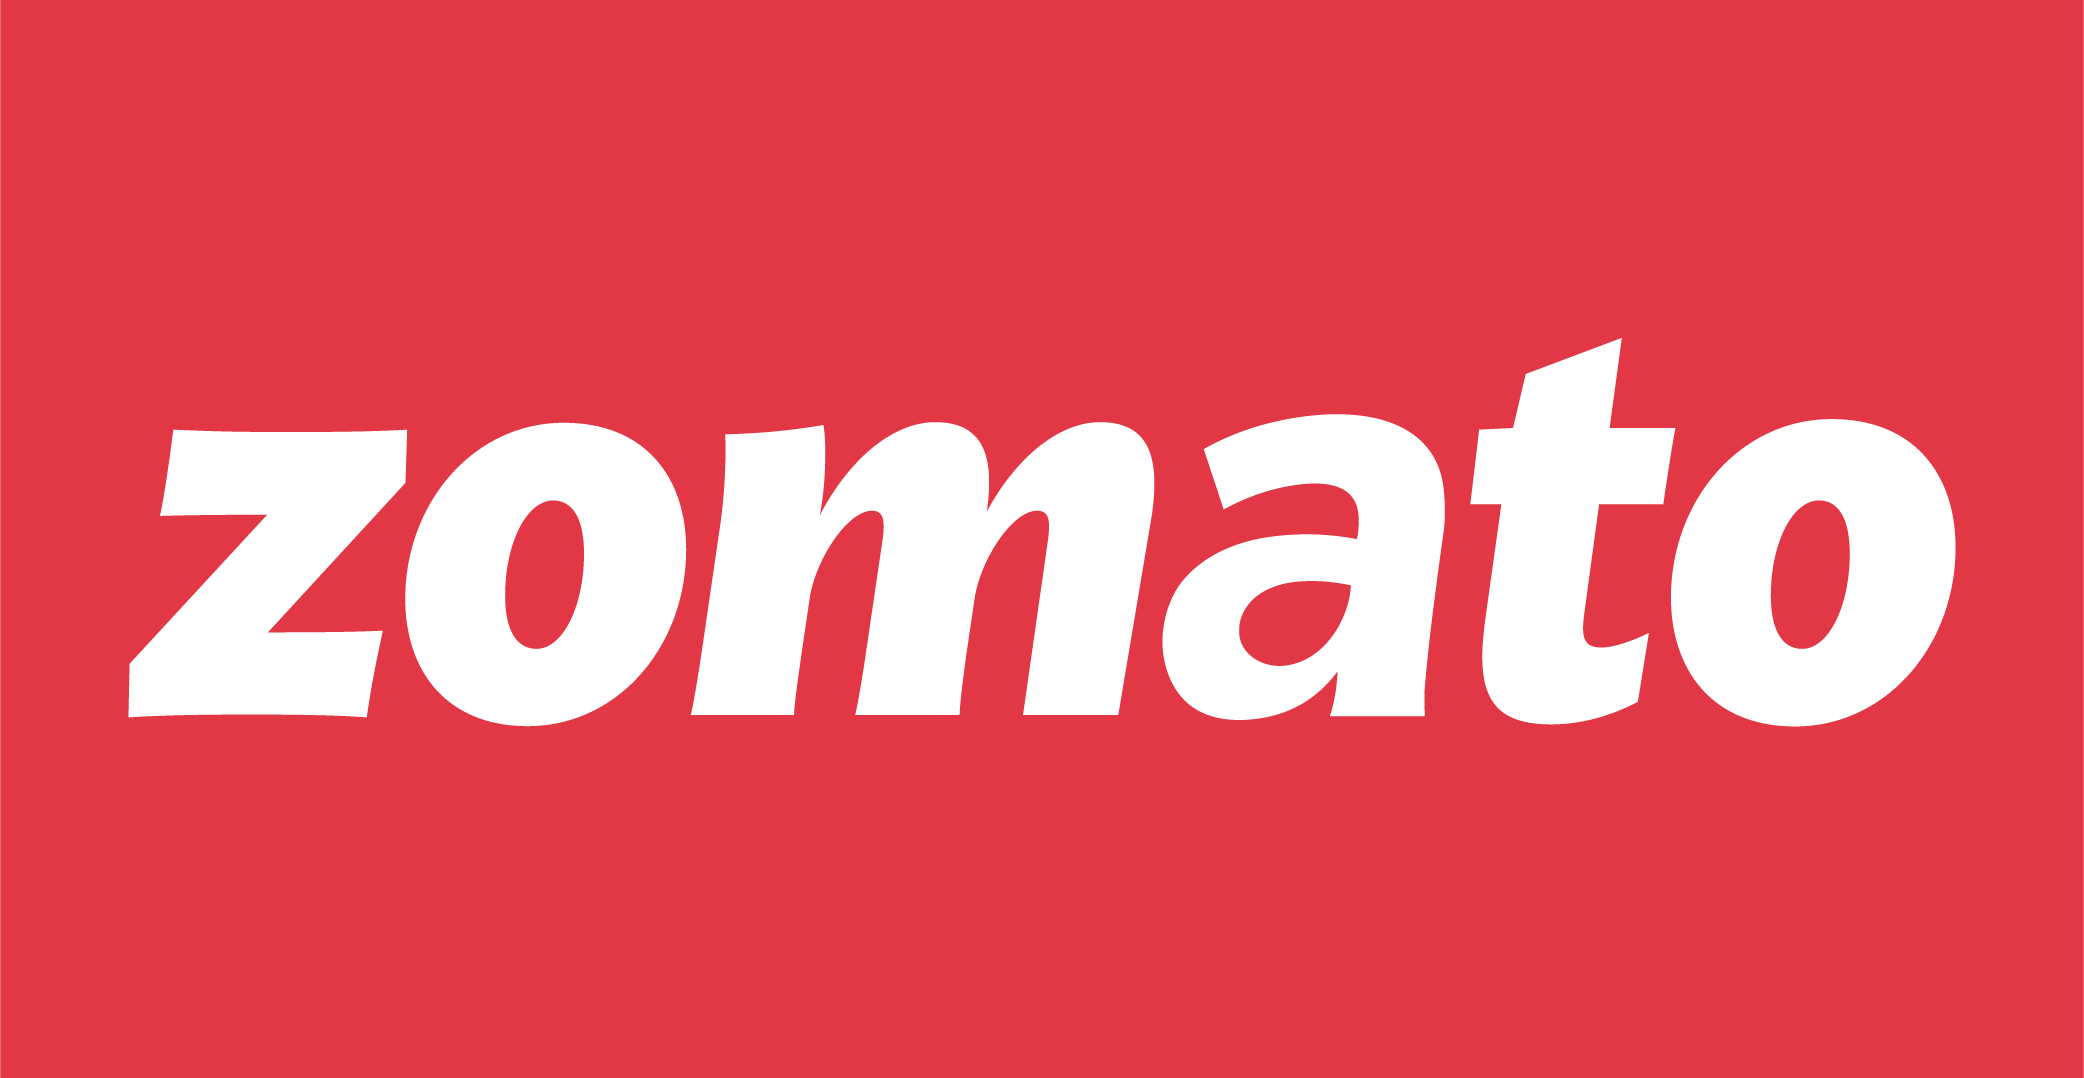 Zomato is a food delivery app founded in India and operating in dozens of other countries. (Image Credit: Aditya7gbp/Wikimedia Commons)